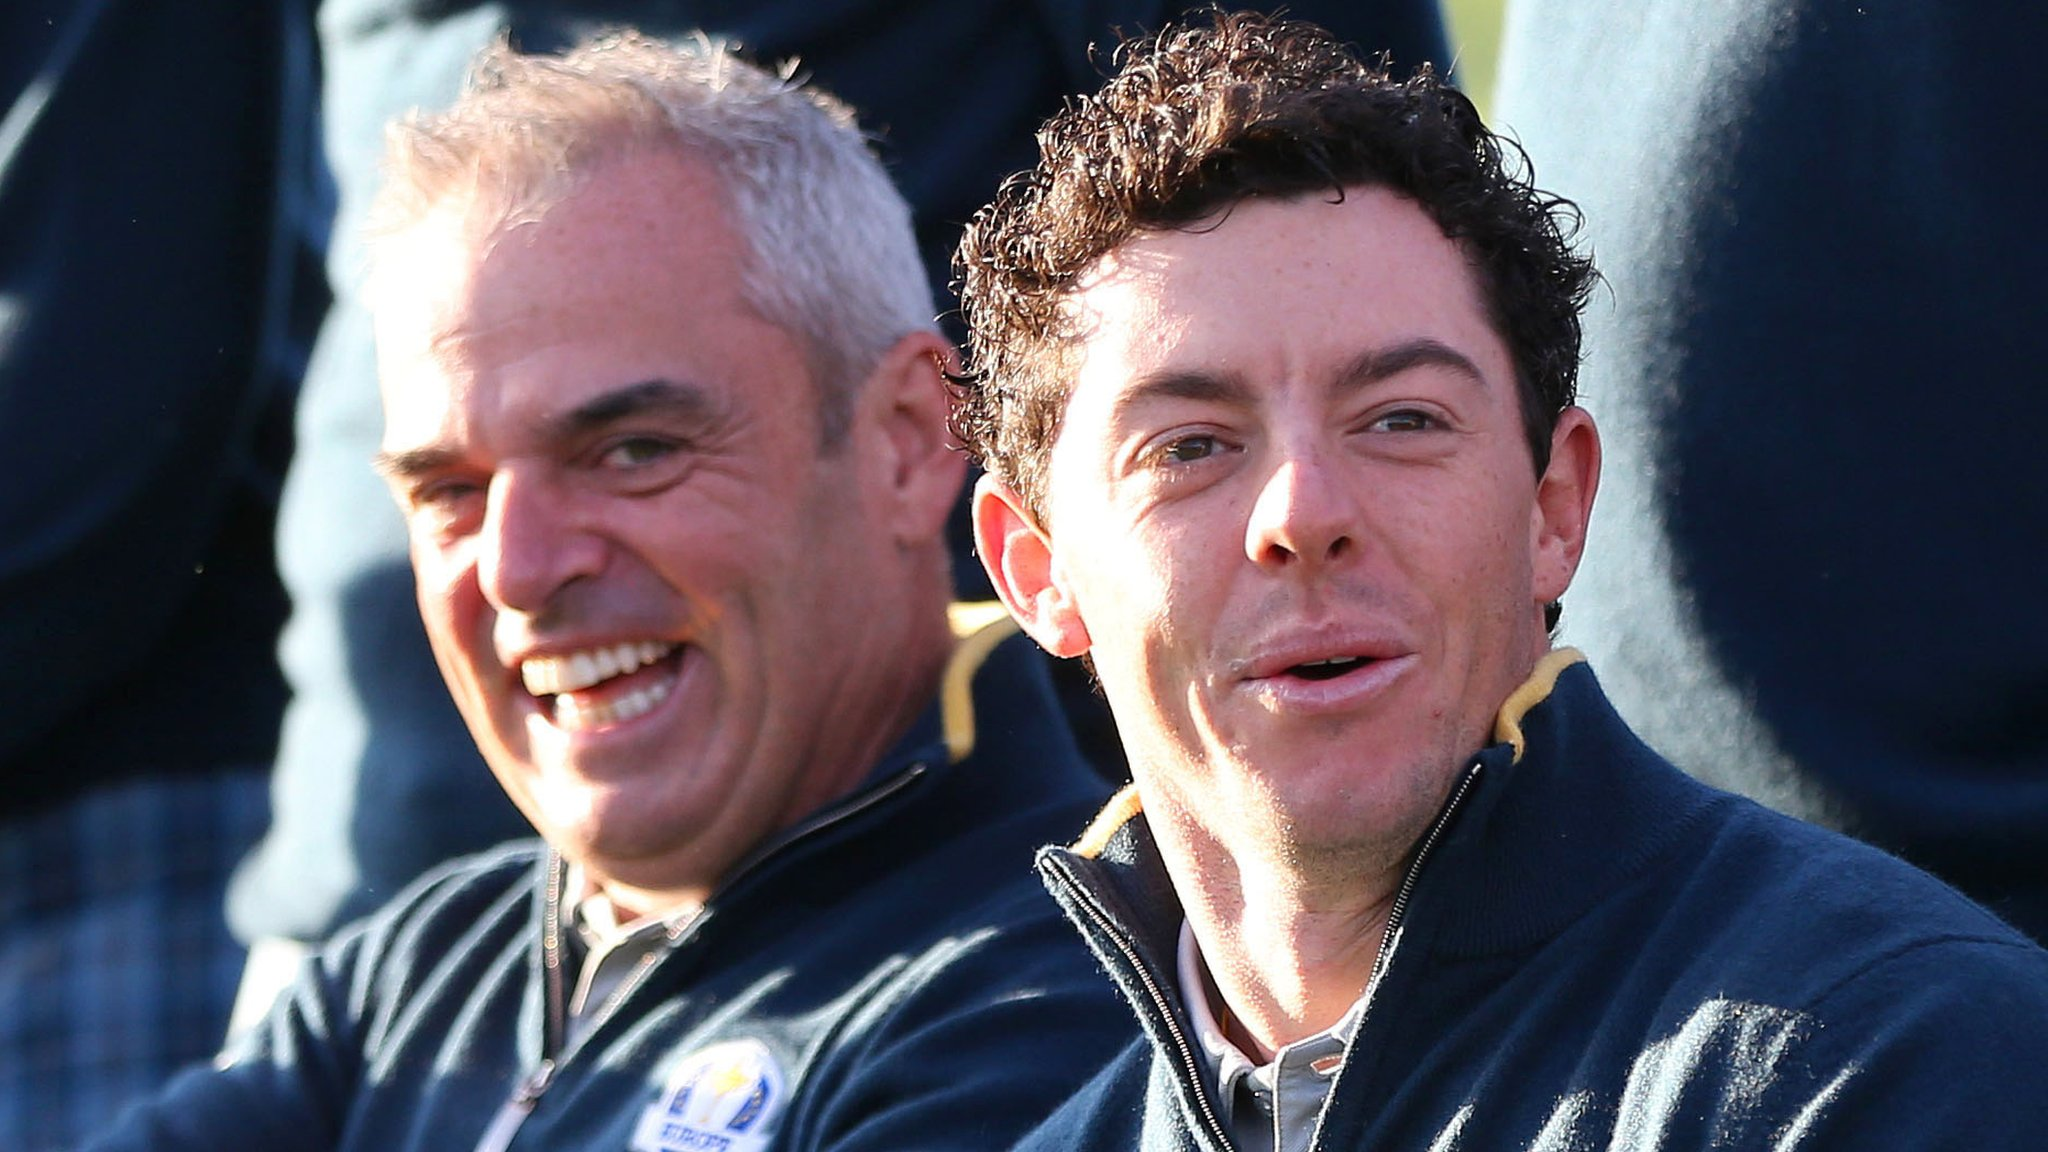 McIlroy's Irish Open snub 'a sign of the times' - McGinley